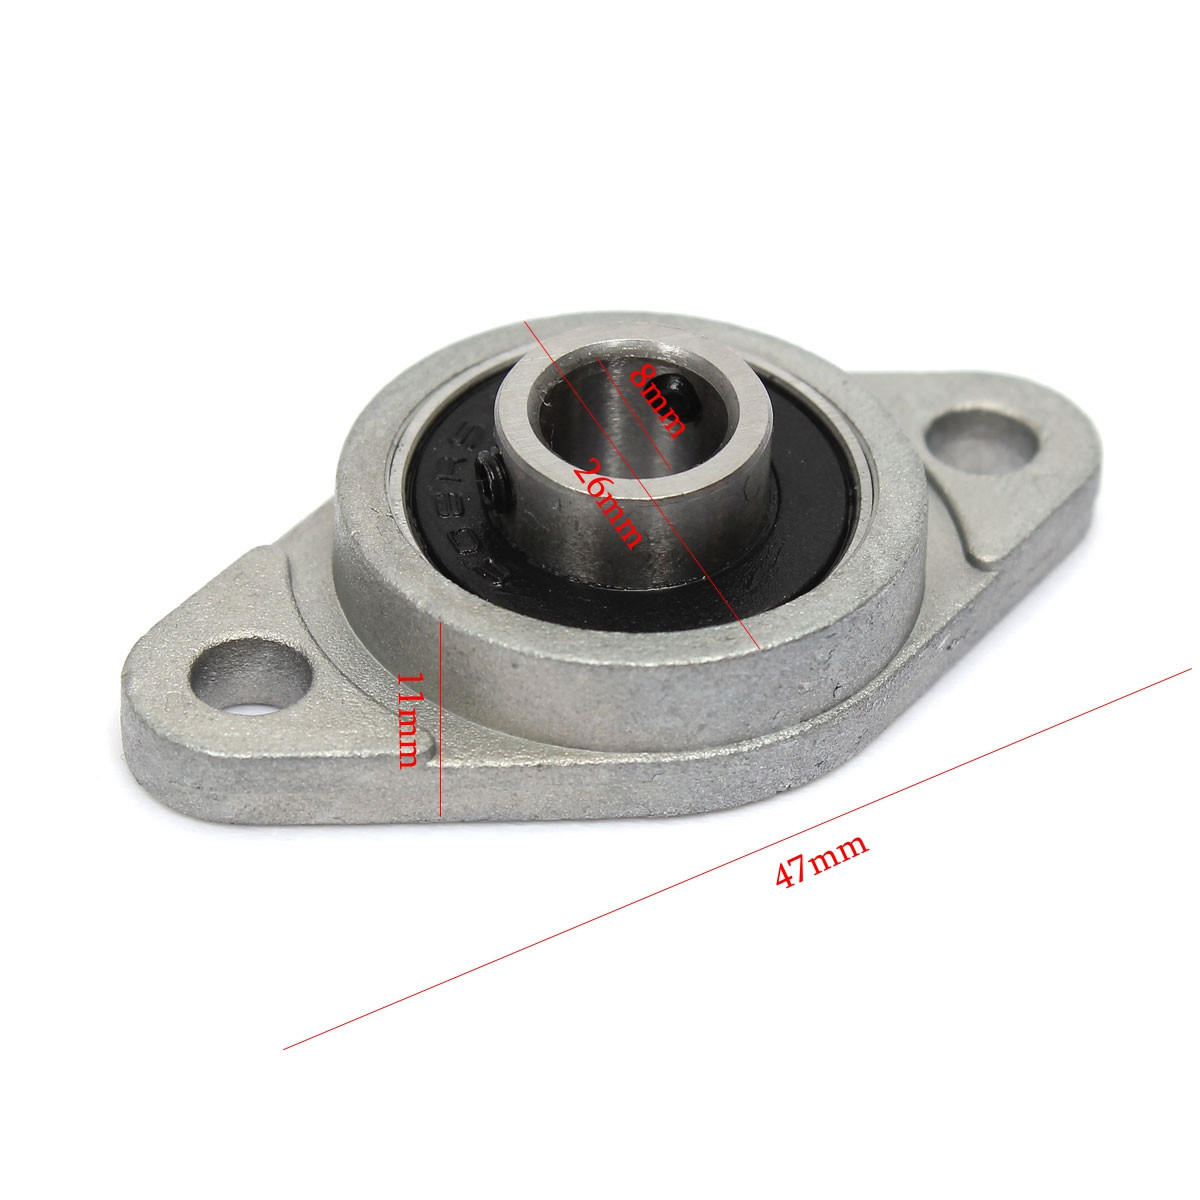 KFL08 Zinc Alloy Pillow Block Flange Bearing 8mm Inner Diameter Flange Bearing